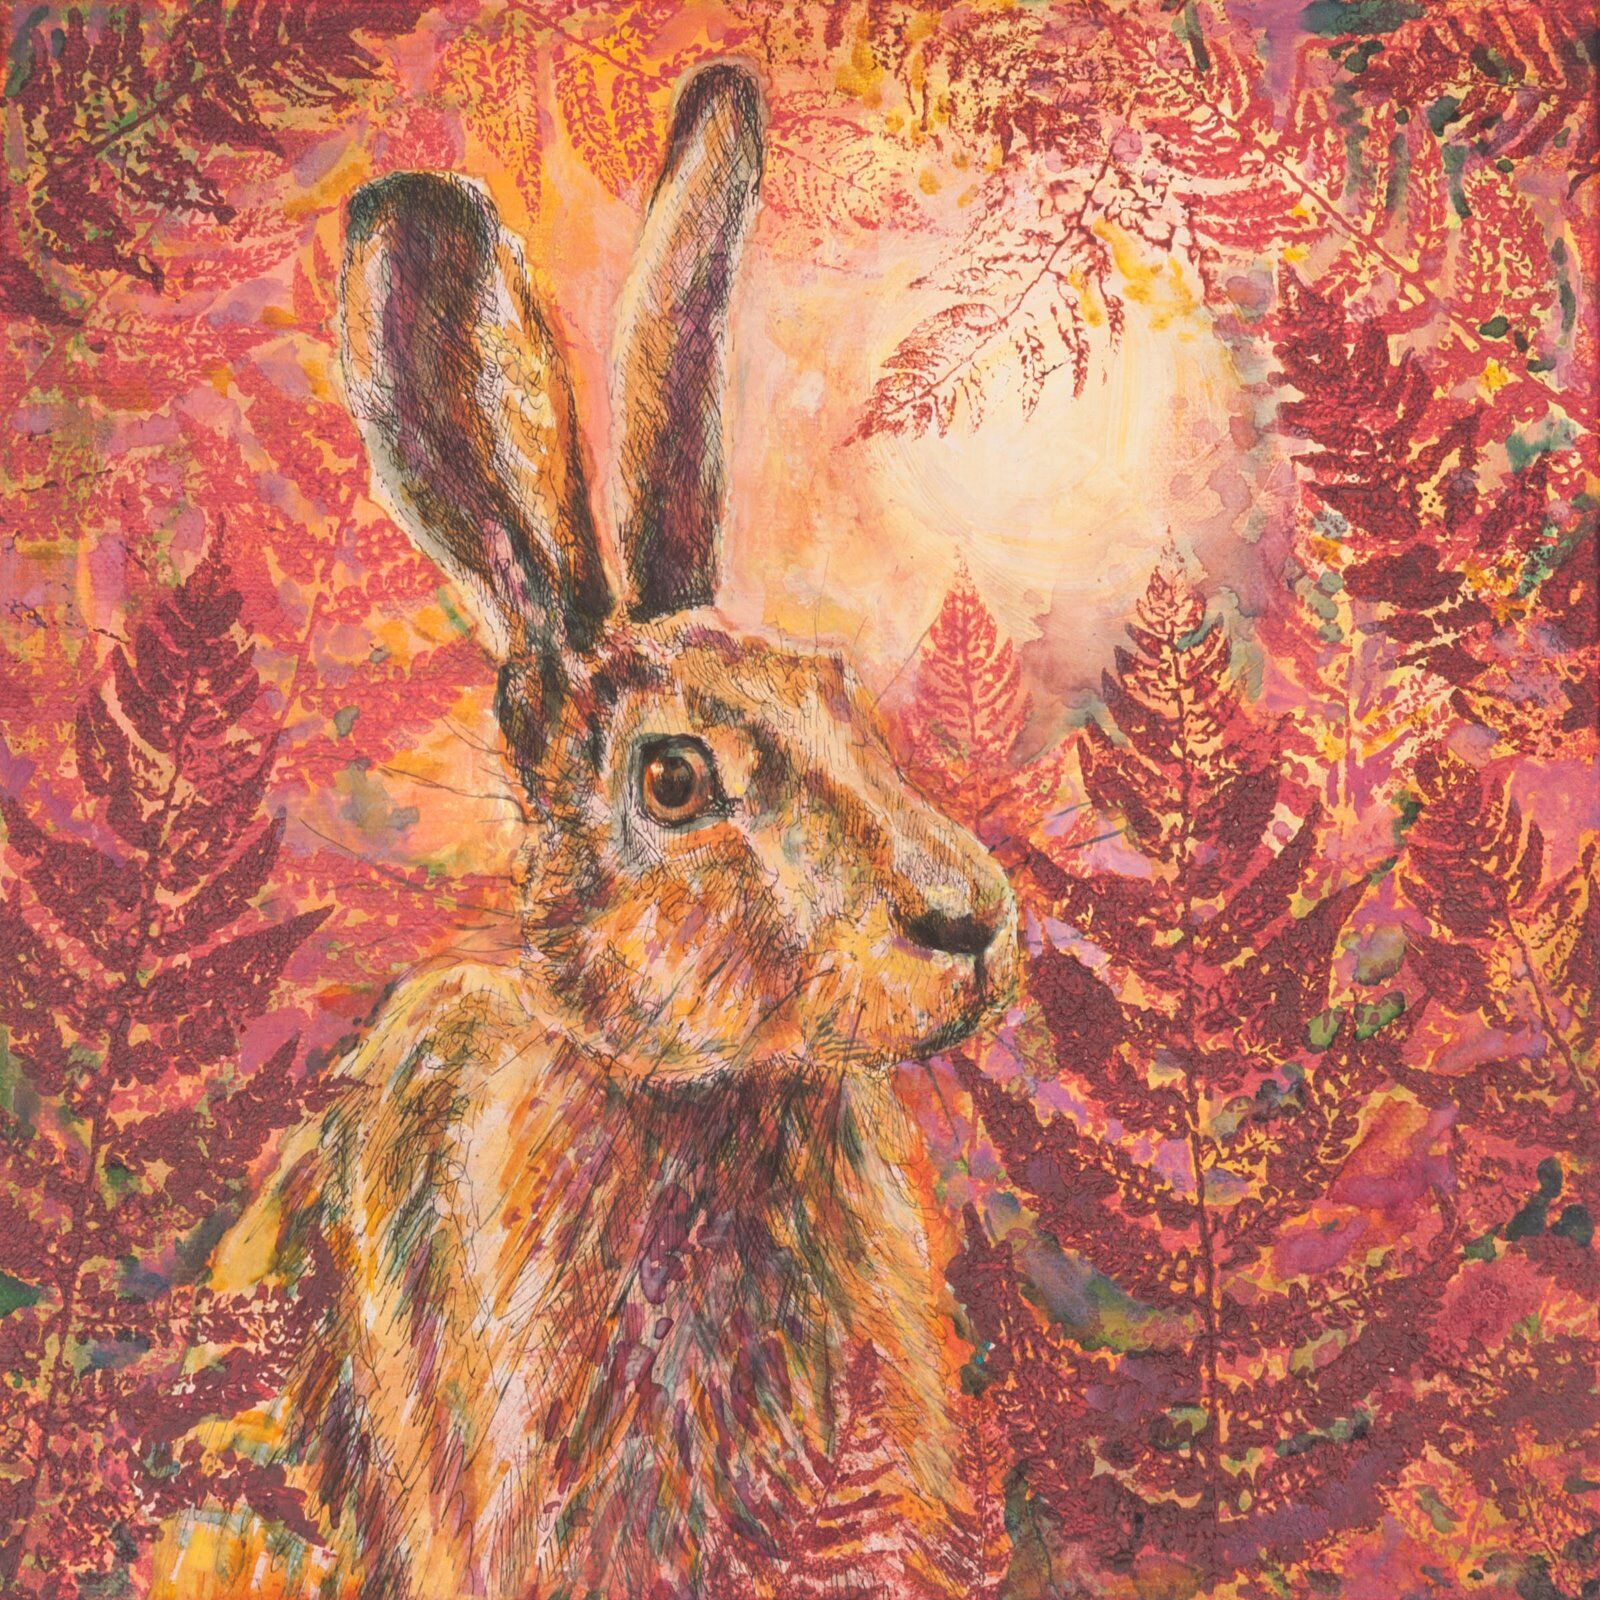 Hare and Ferns